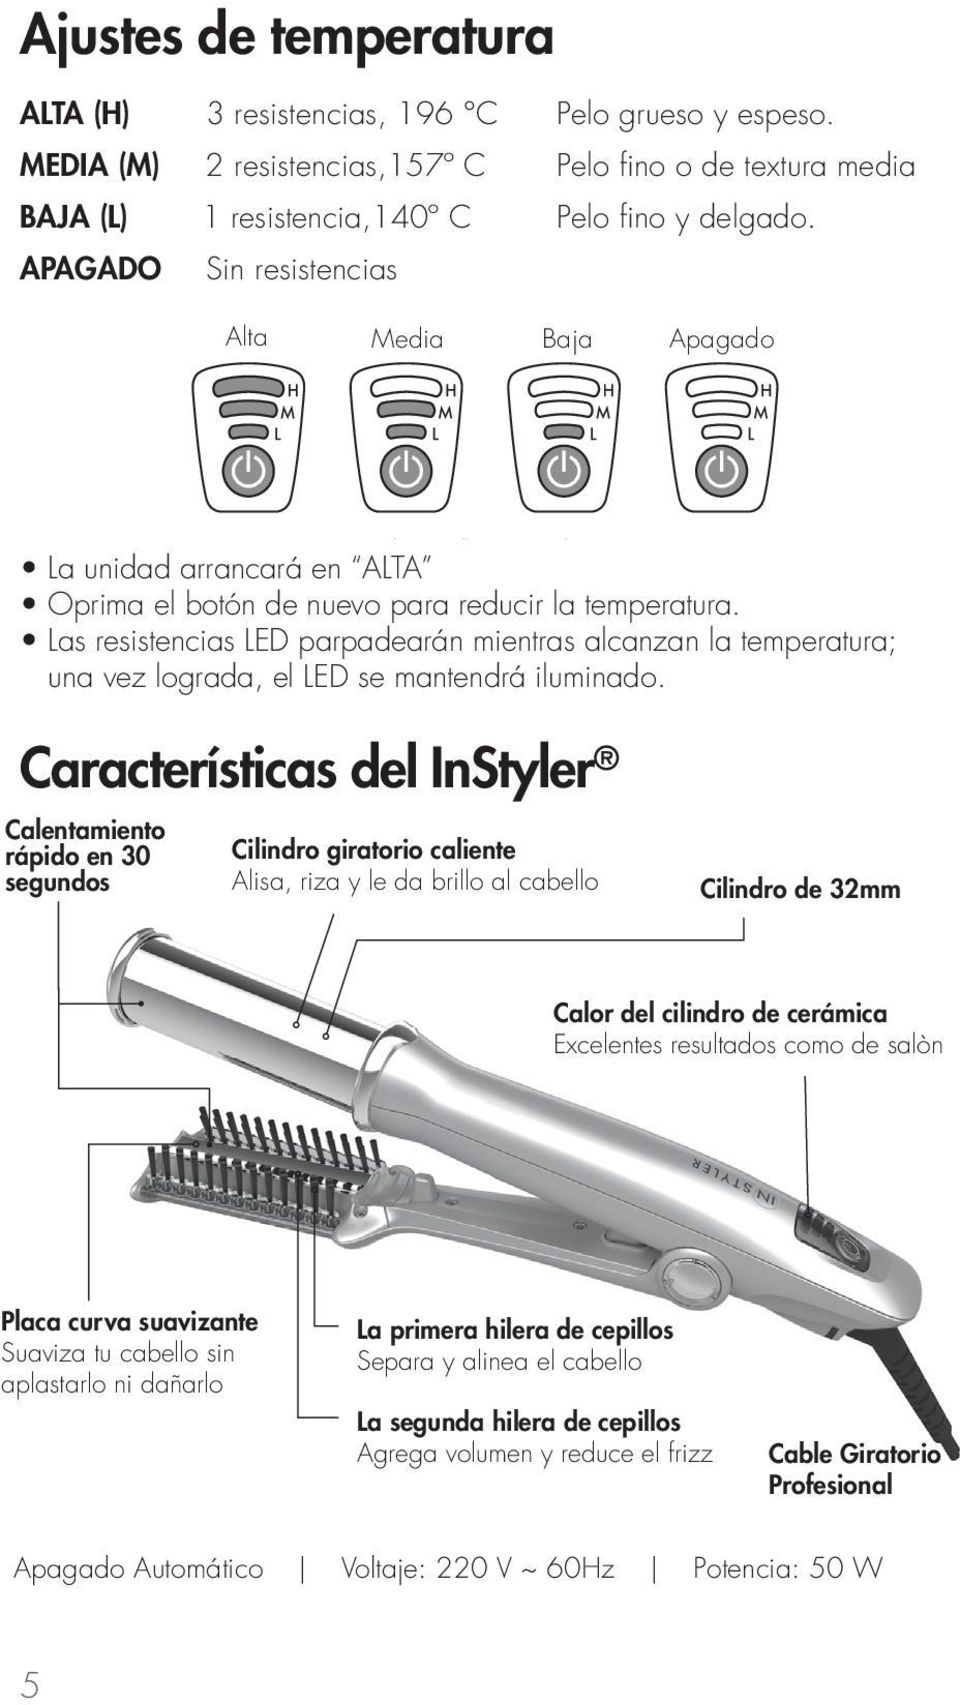 Plancha Giratoria Manual De Usuario 32mm Plancha Instyler Pdf Free Download